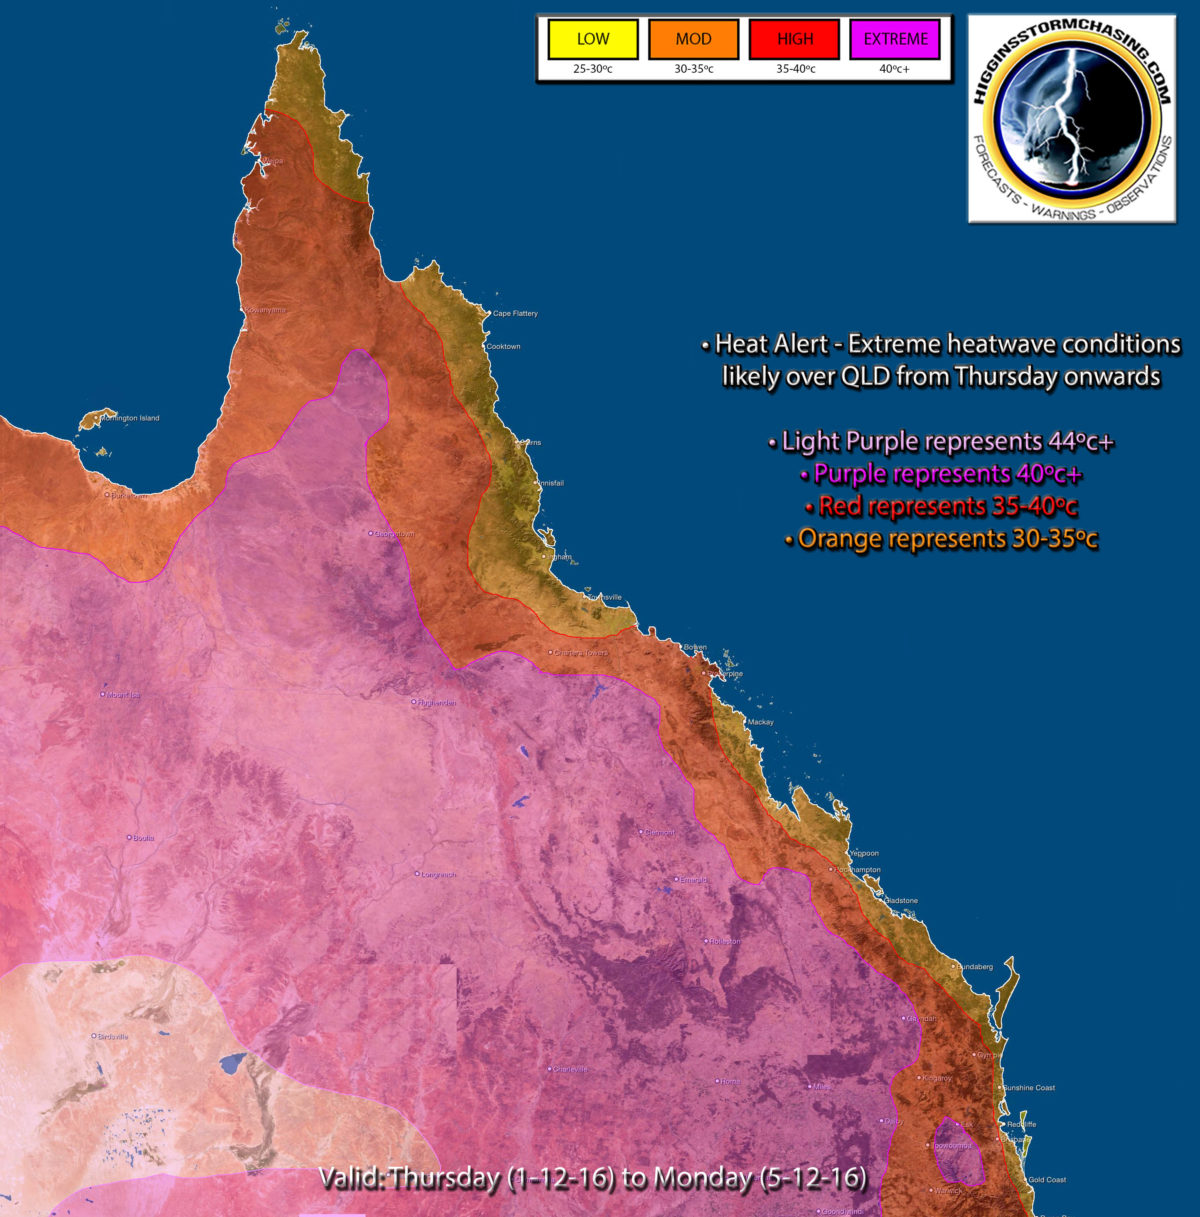 HSC heatwave threat map from Thursday to Monday